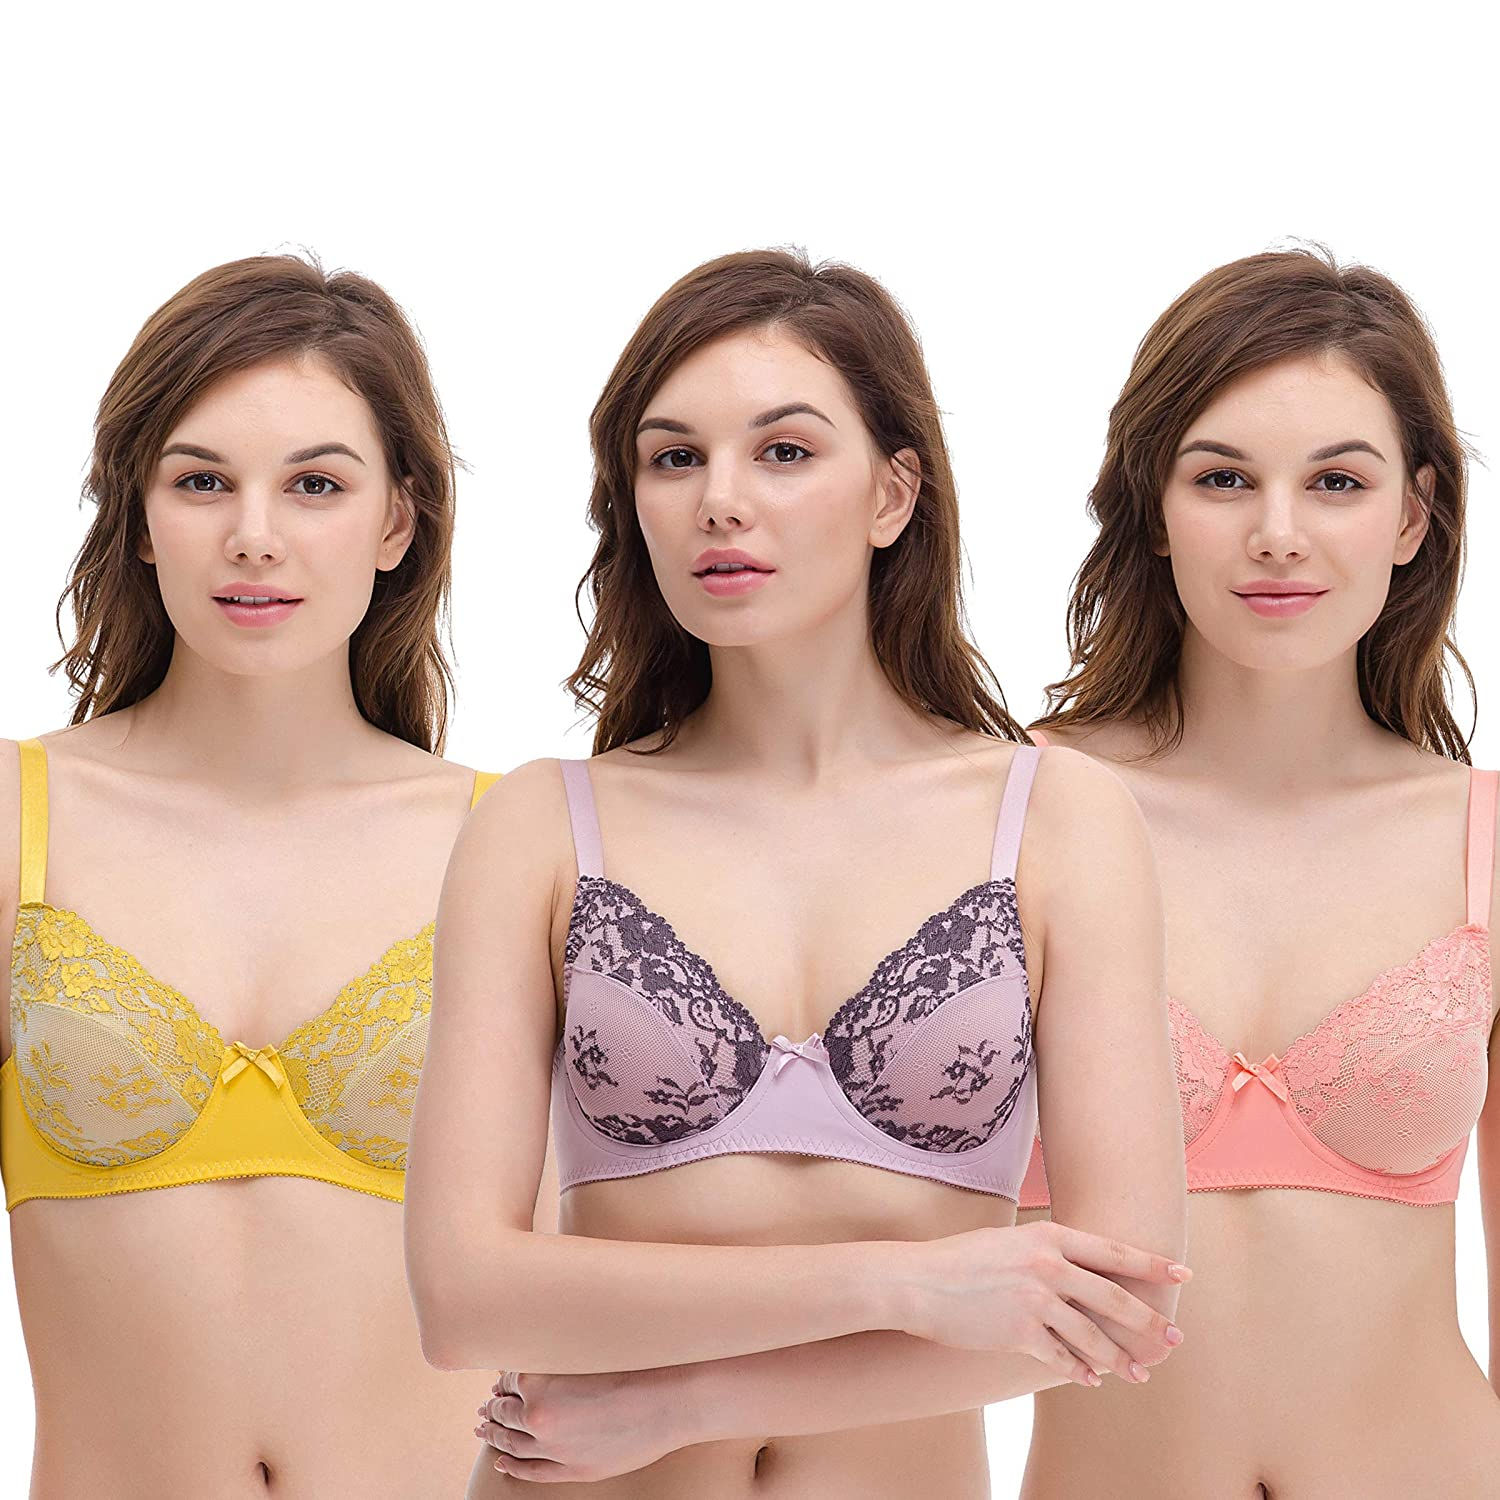 07546607df2 ... Plus Size Unlined Semi-Sheer Balconette Underwire Lace Bra. Wholesale  Price 39.99 88% NYLON 12% SPANDEX Imported Hook and Eye closure. Our 3 pack  of ...